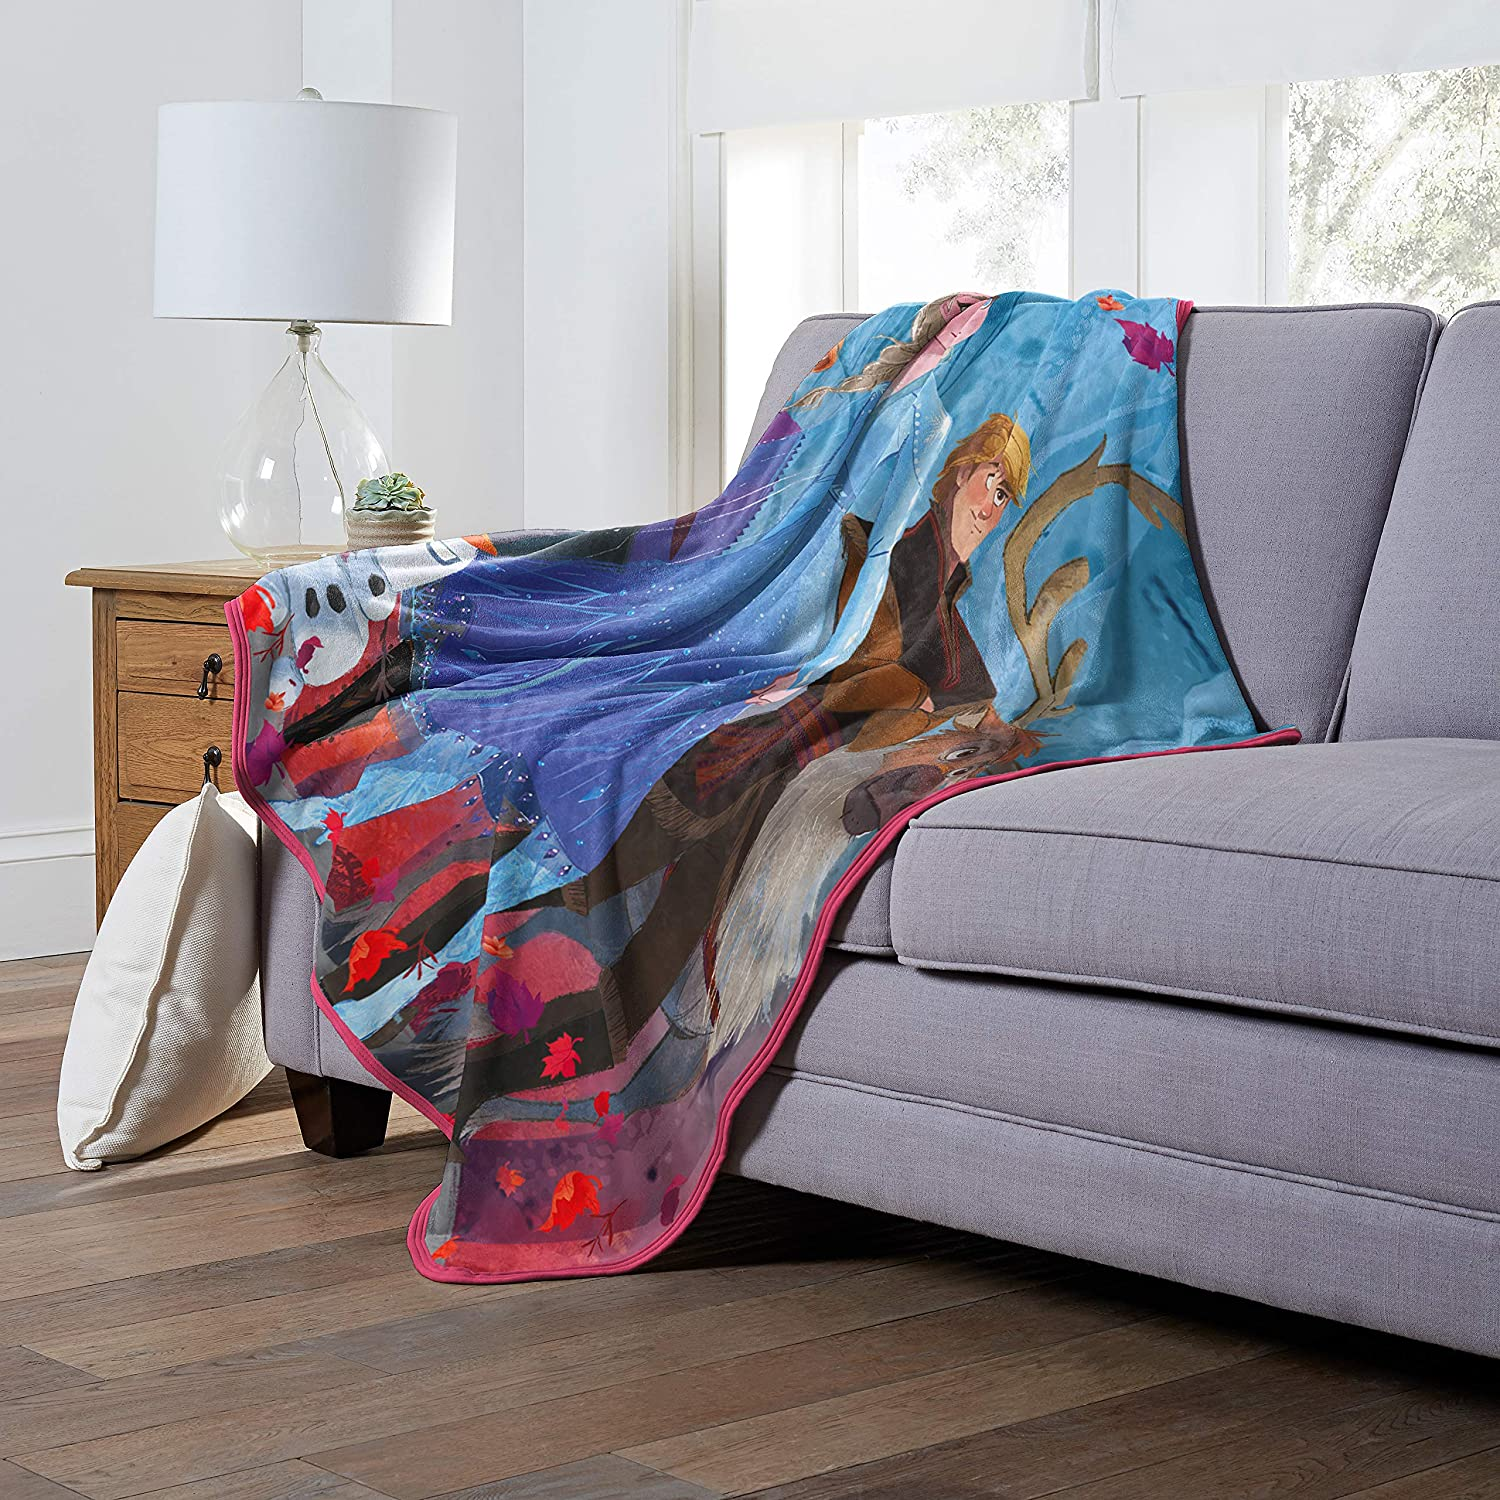 Disney 'Colorful Journey' Oversized Silk Touch Throw Blanket, 60